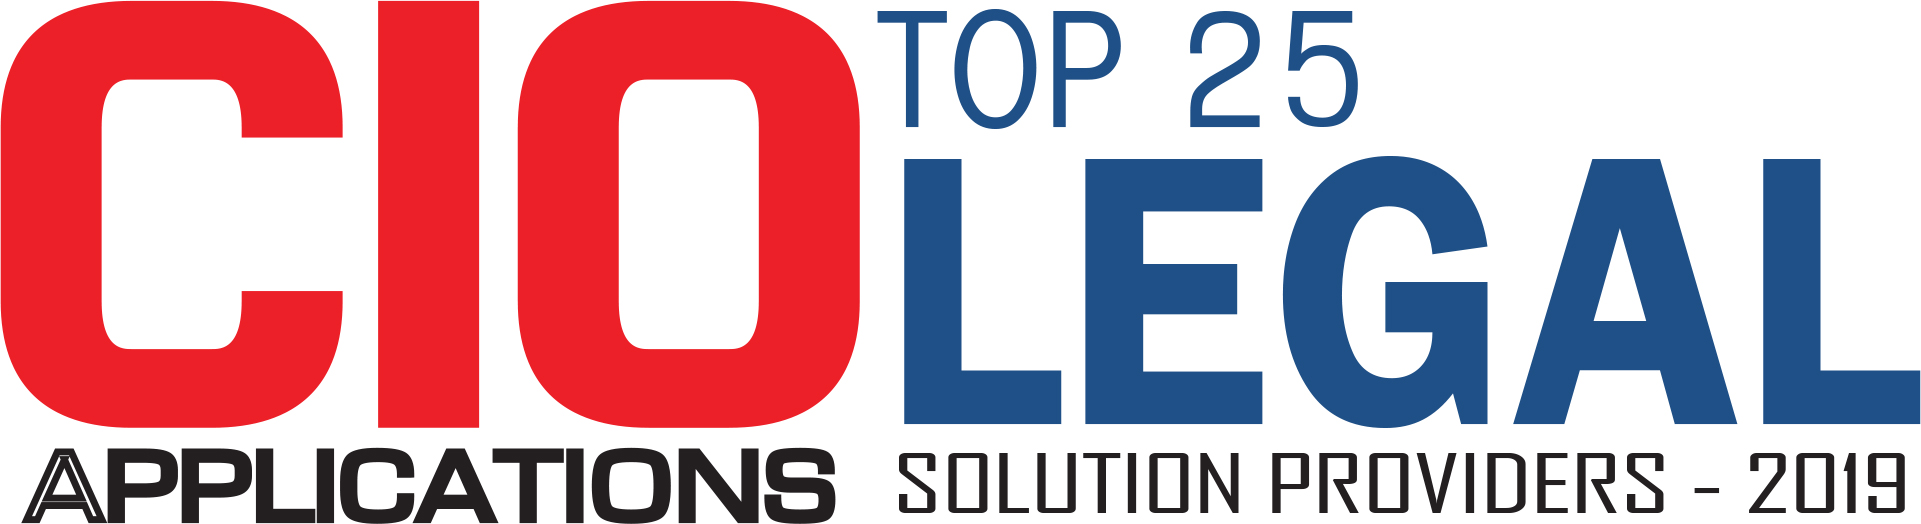 Top 25 Legal Tech Solution Companies - 2019